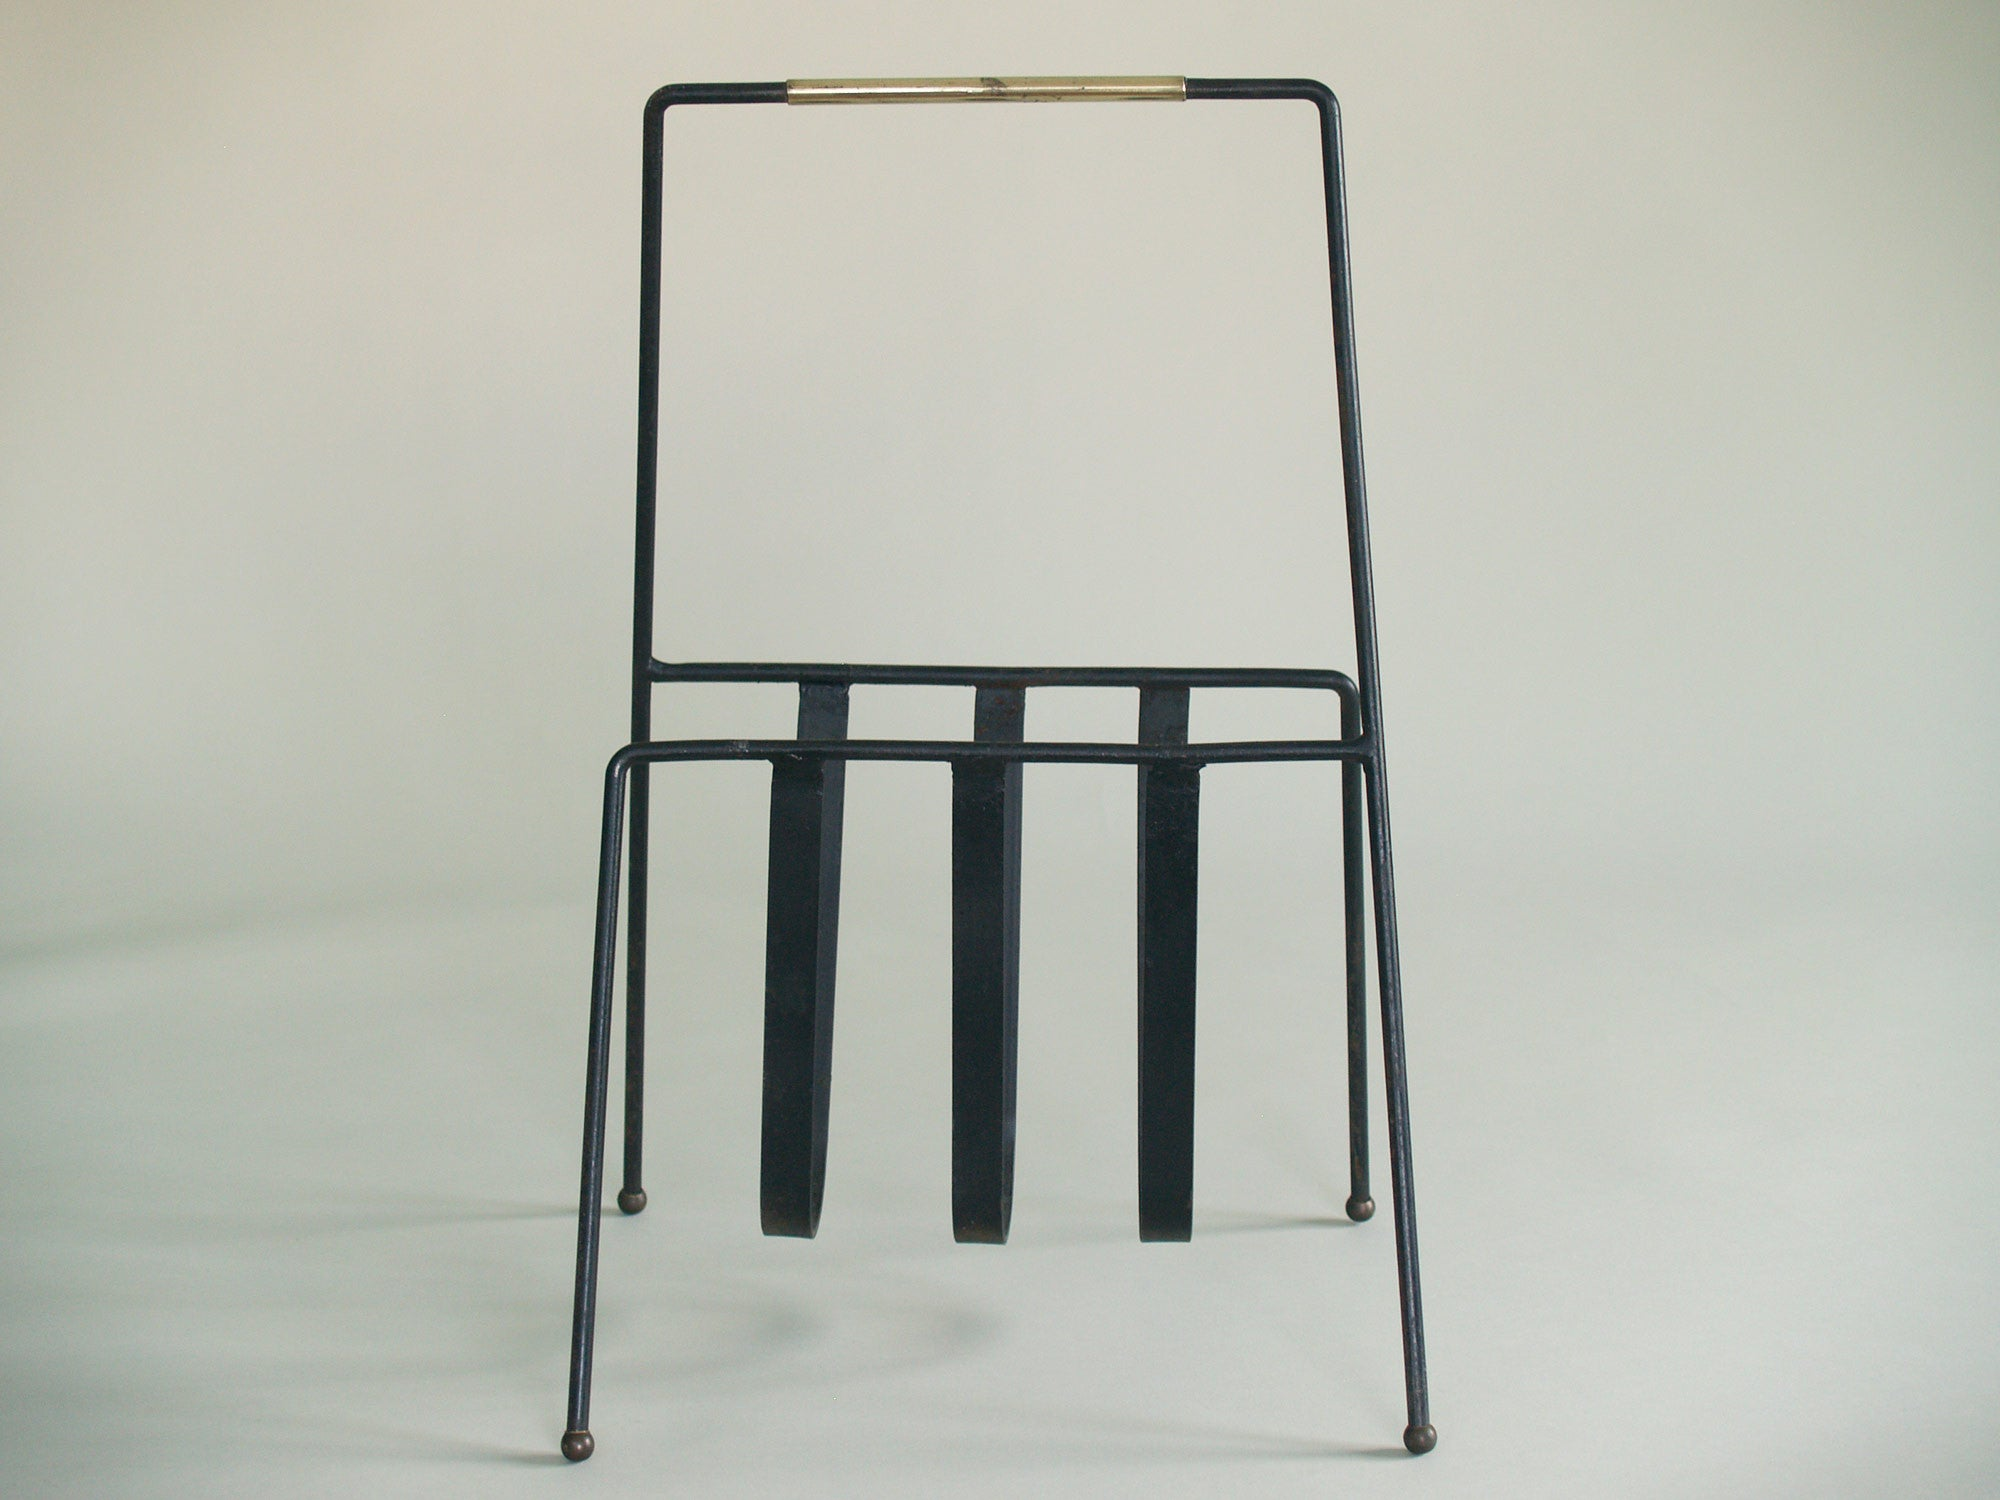 Porte-revue moderniste, France (années 1950)..Modernist Magazine rack, France (circa 1950)